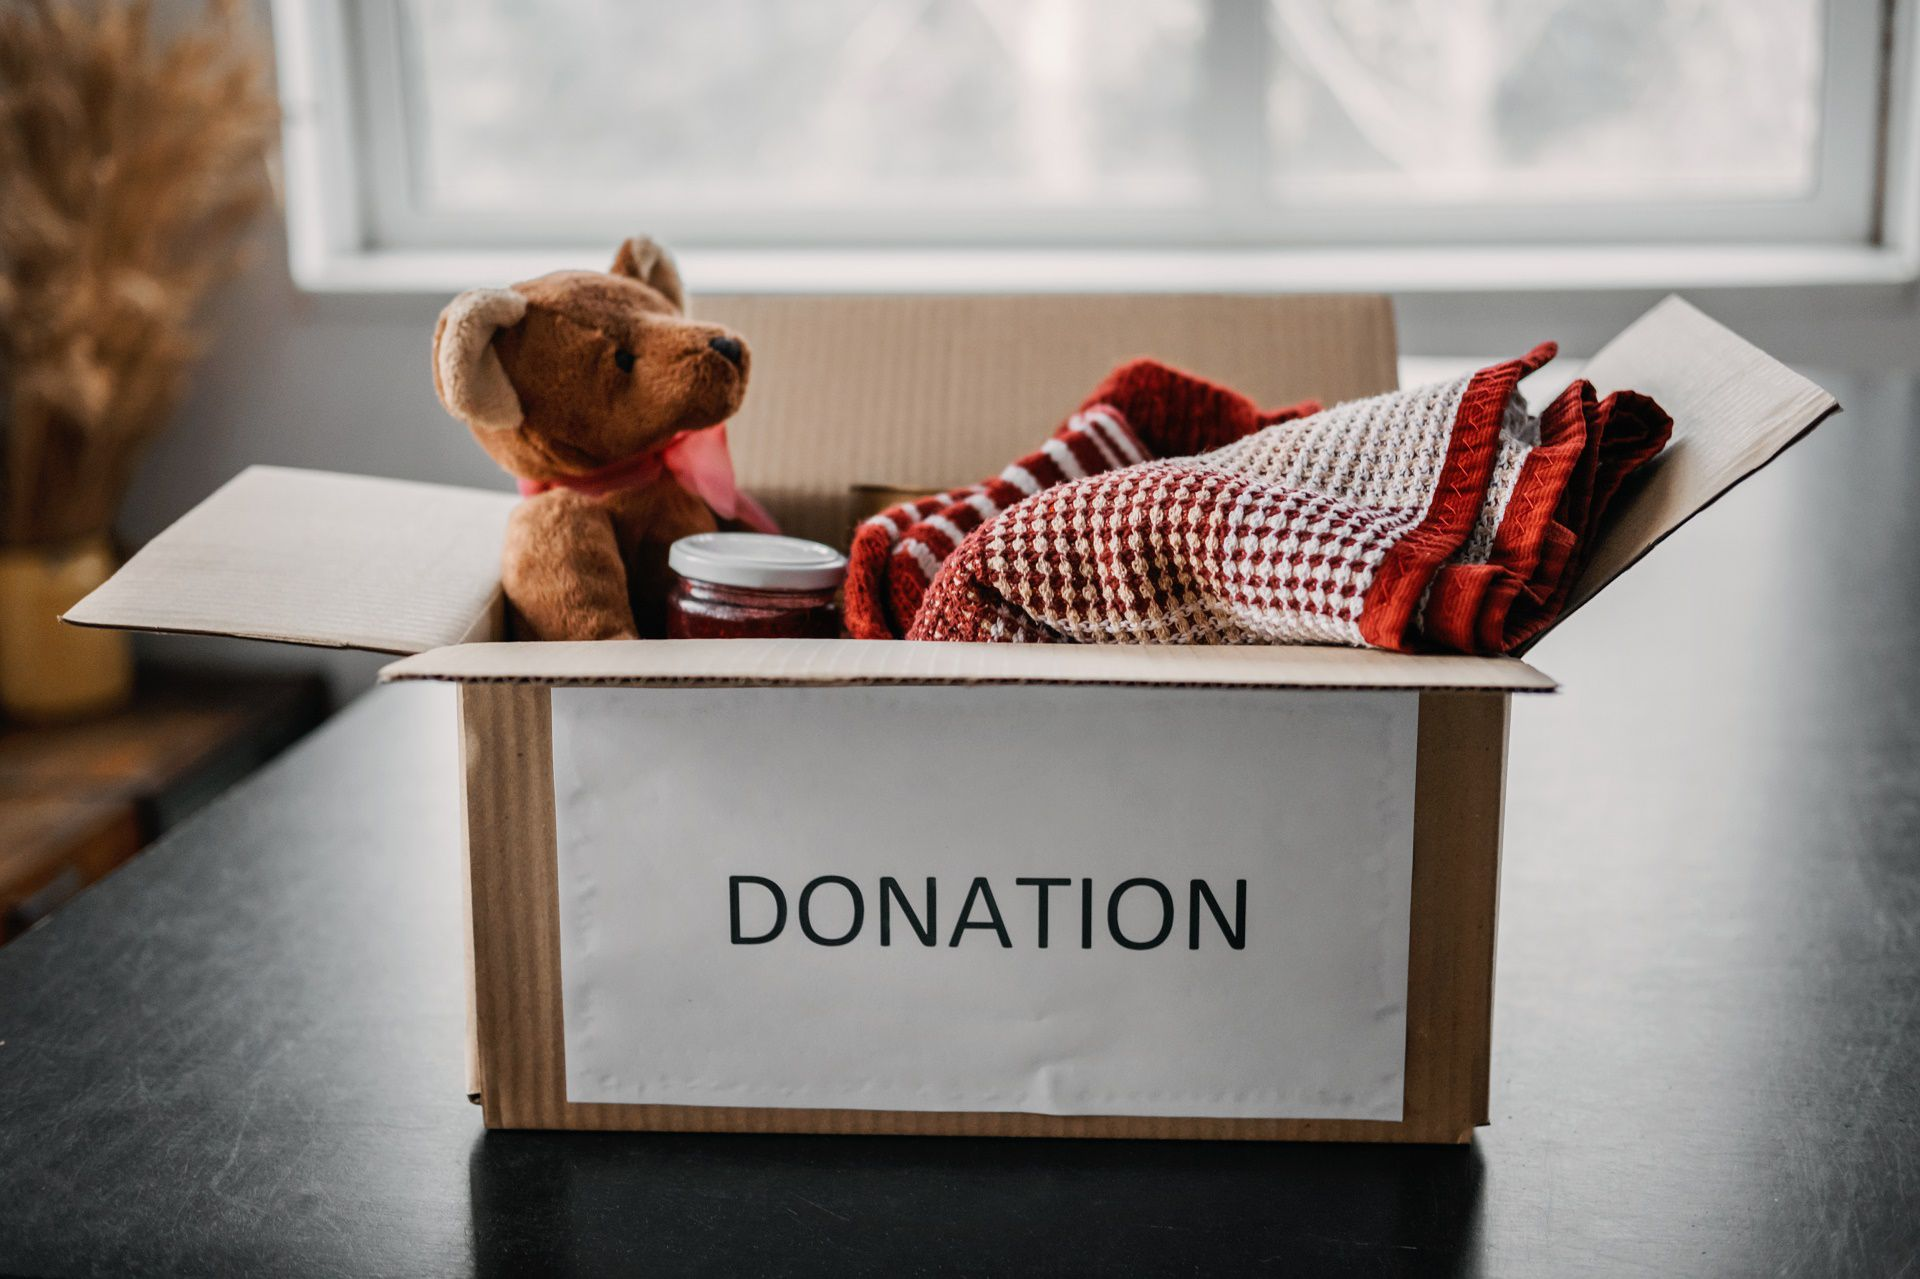 donation box filled with charitable goods